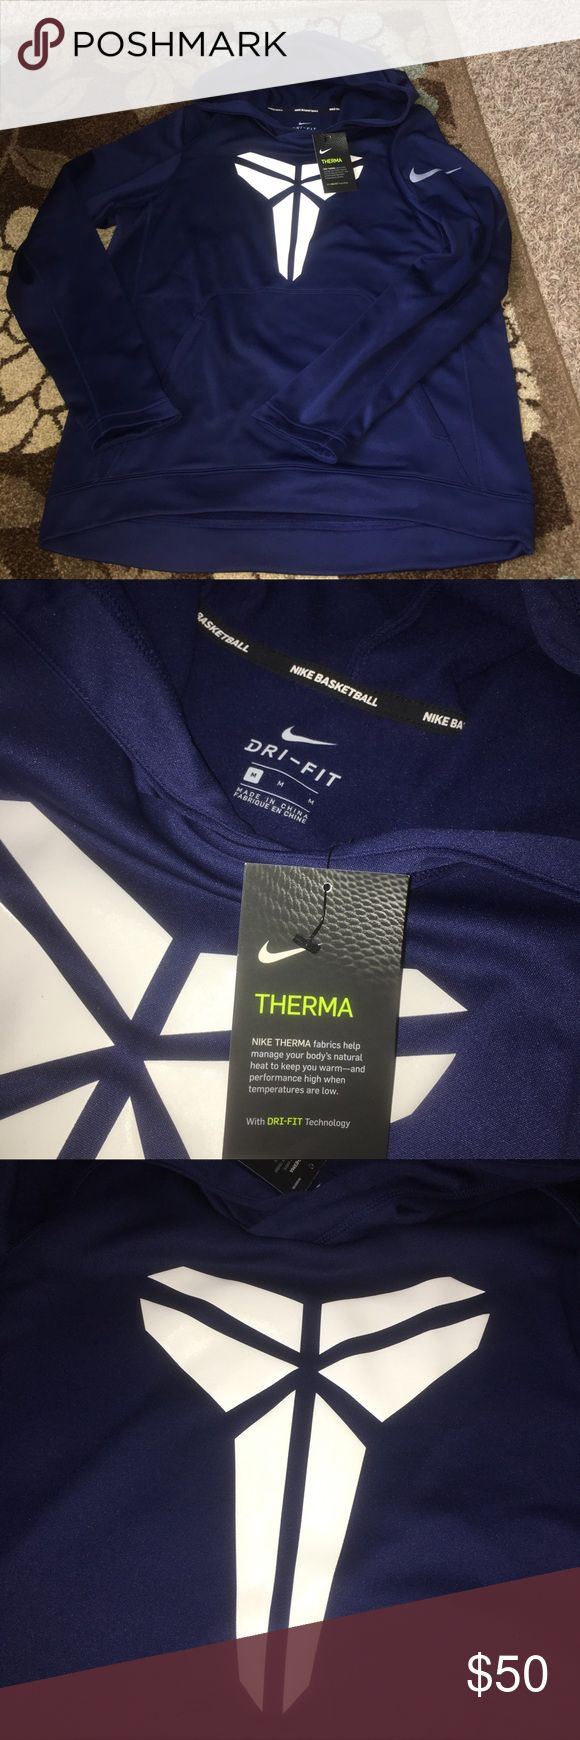 New Kobe Bryant dark blue Nike hoodie Comes from a smoke free home! Brand new with tags! Has huge Kobe Bryant symbol in the front of the jacket and the Nike symbol on one of the sleeves! Designed for Nike basketball! Nike Shirts Sweatshirts & Hoodies